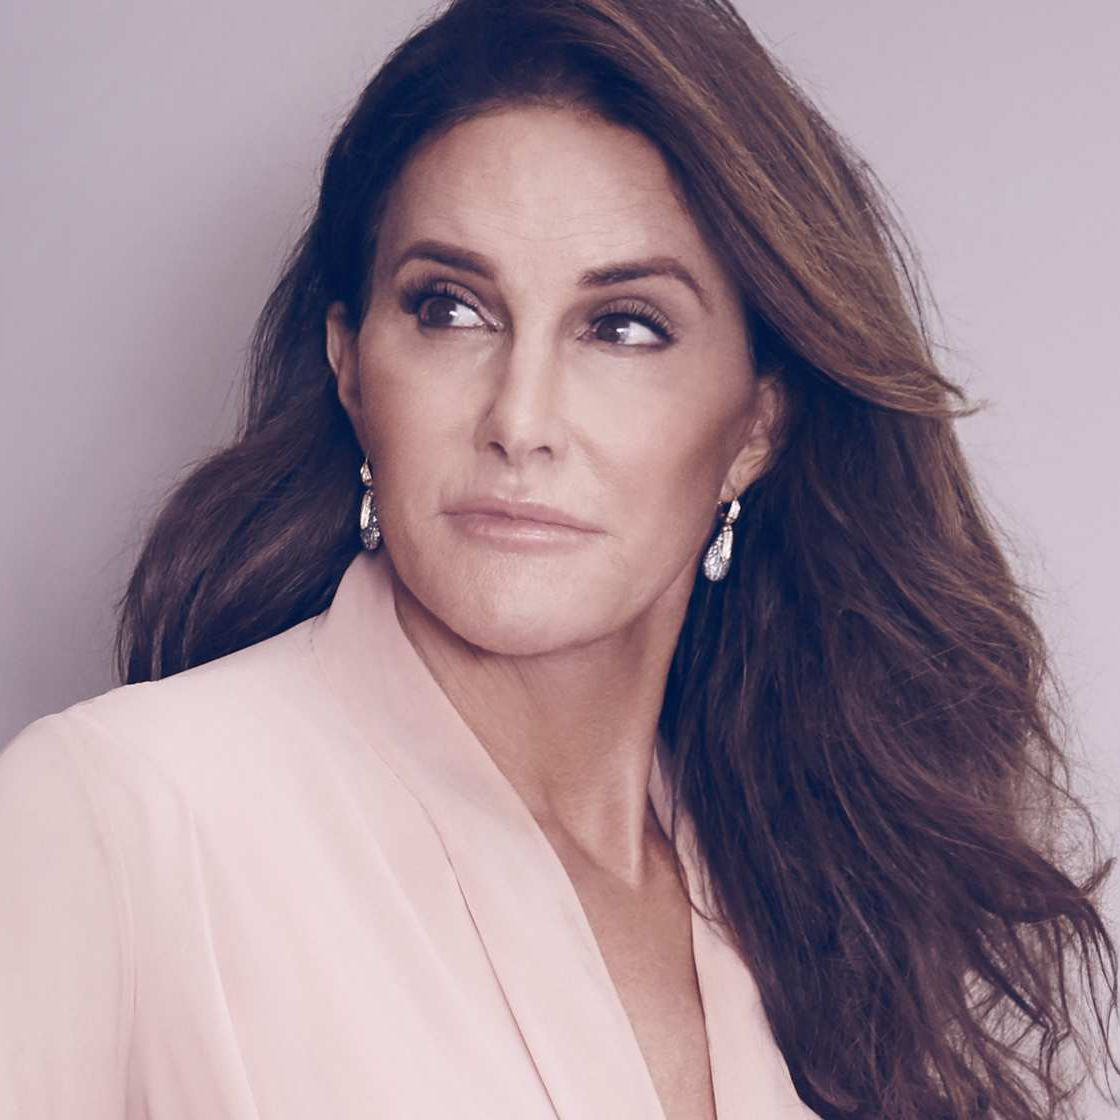 caitlyn jenner - photo #9